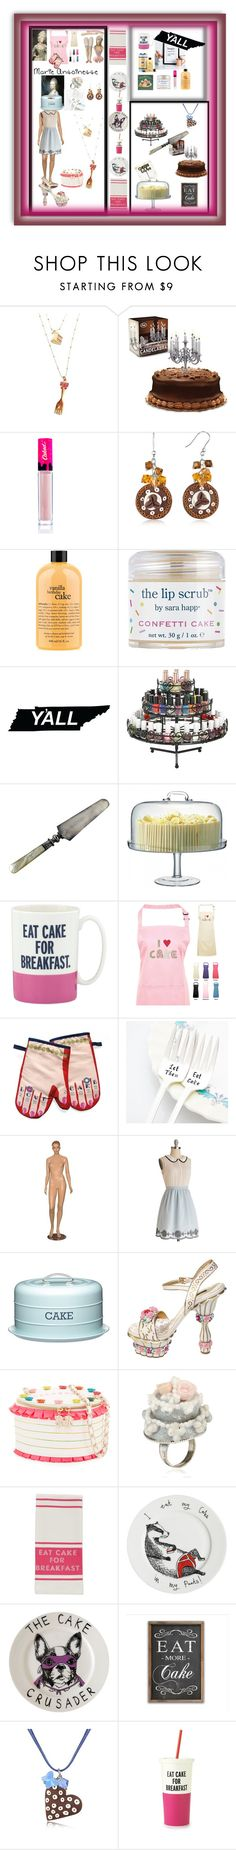 """""""It's Just Cake to Me"""" by mcronald-denise ❤ liked on Polyvore featuring Betsey Johnson, Caked, Dolci Gioie, philosophy, Sara Happ, LSA International, Kate Spade, Stuart Gardiner, Dolce&Gabbana and Les Délices de Rose"""